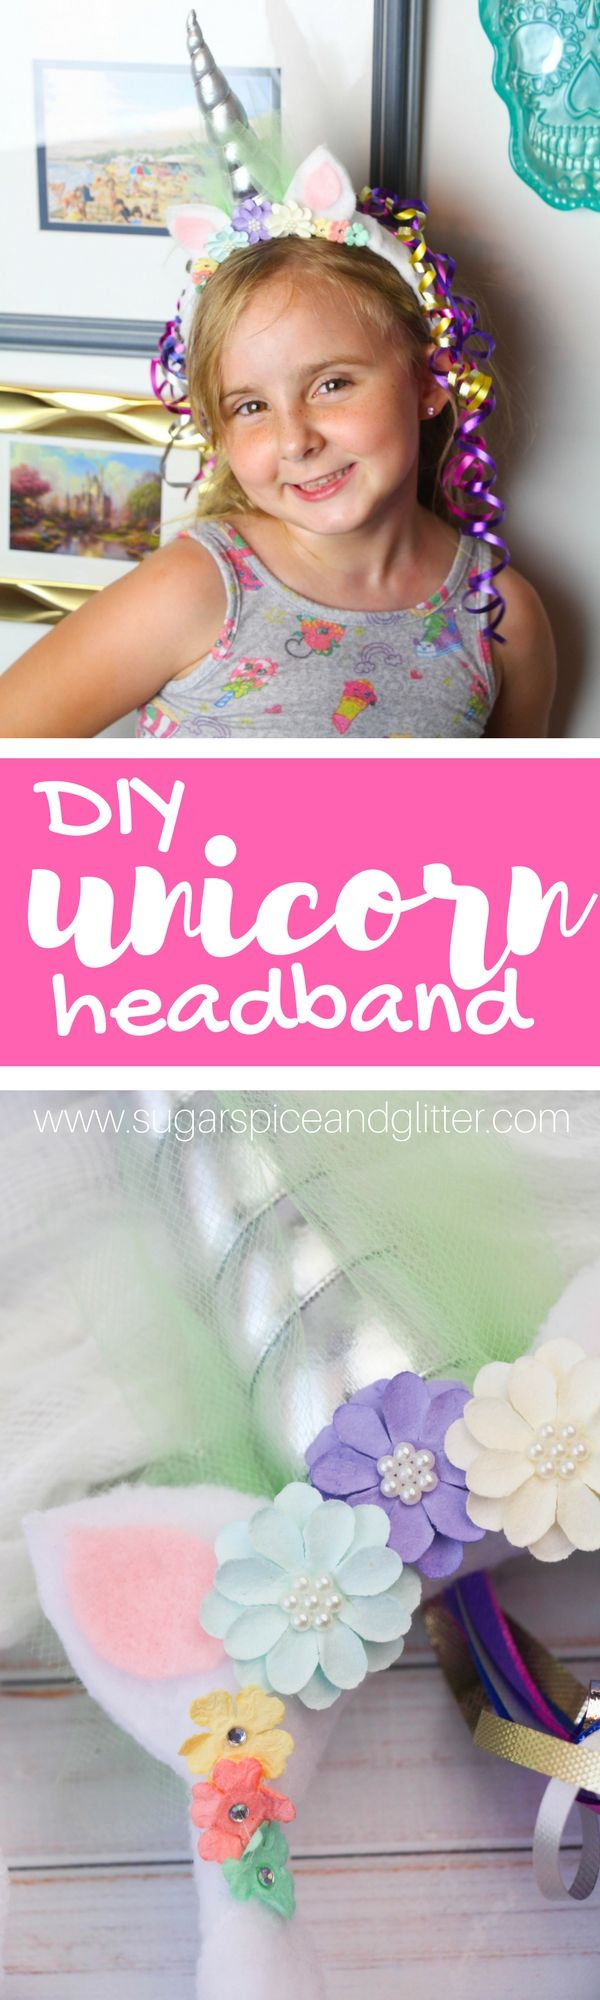 How cute is this Unicorn Headband kids can help make? Perfect for a DIY unicorn costume, a unicorn party or just a fun accessory for a unicorn-obsessed kid